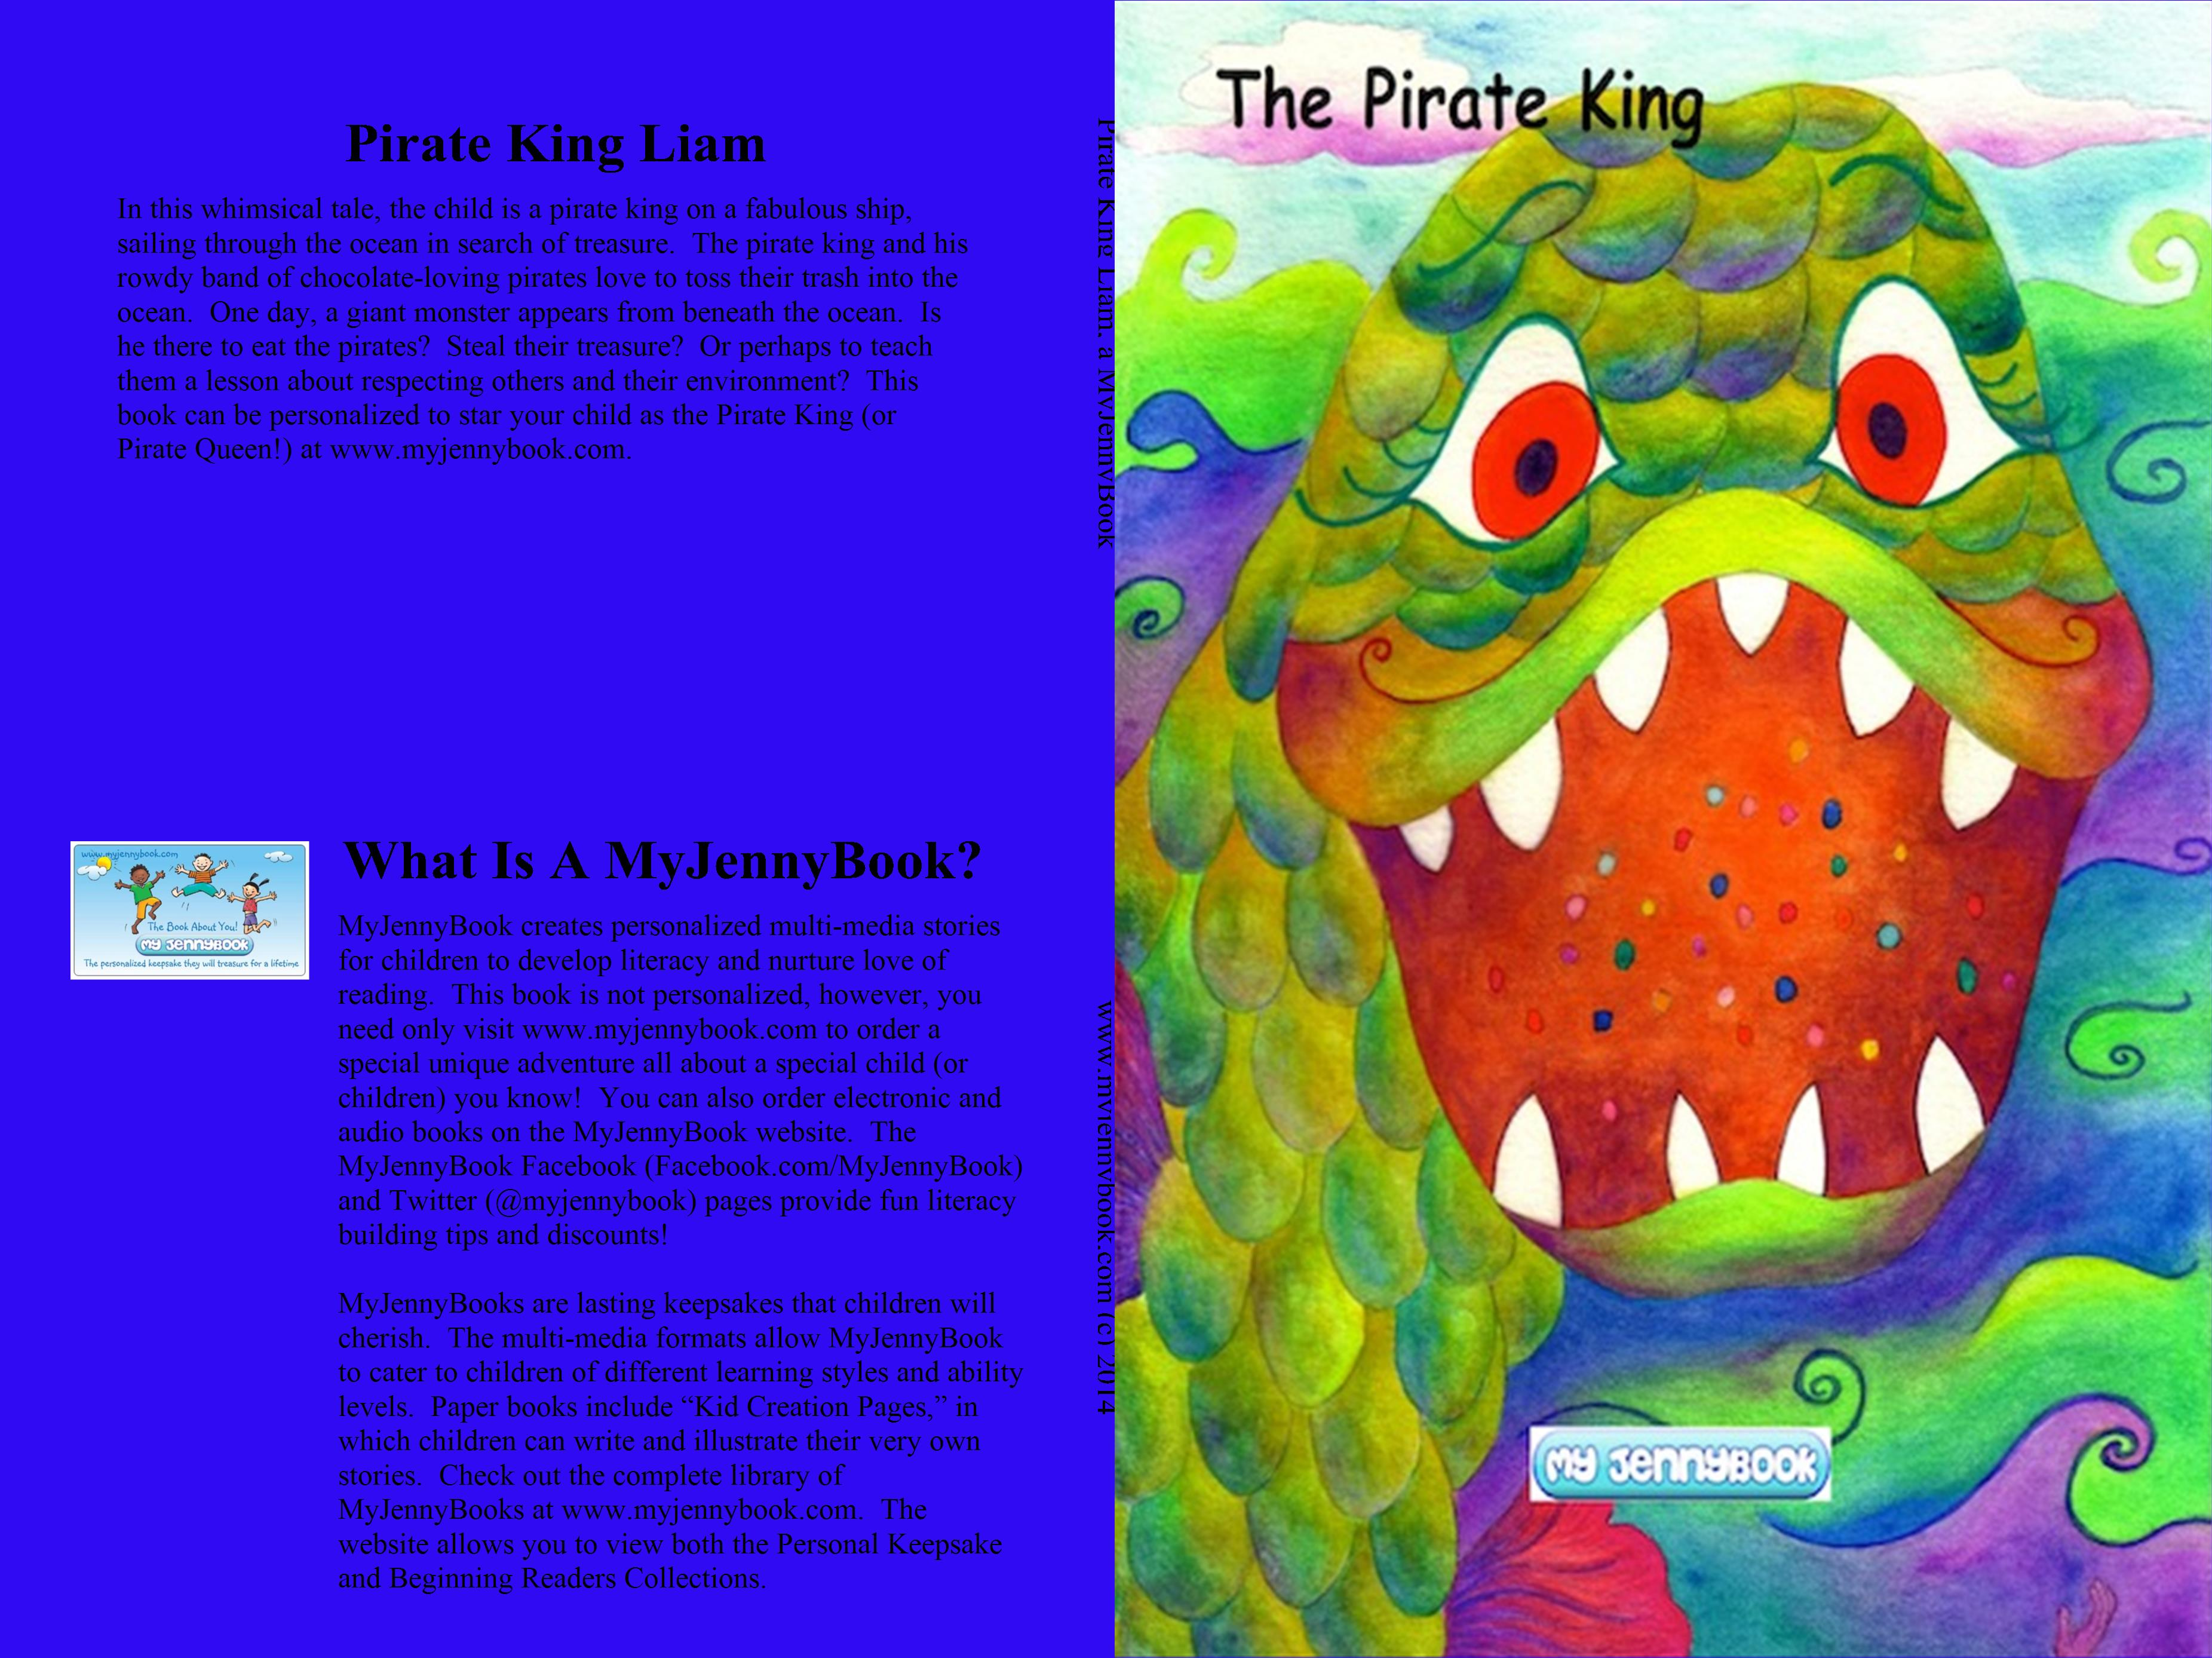 Pirate King Liam, a MyJennyBook cover image